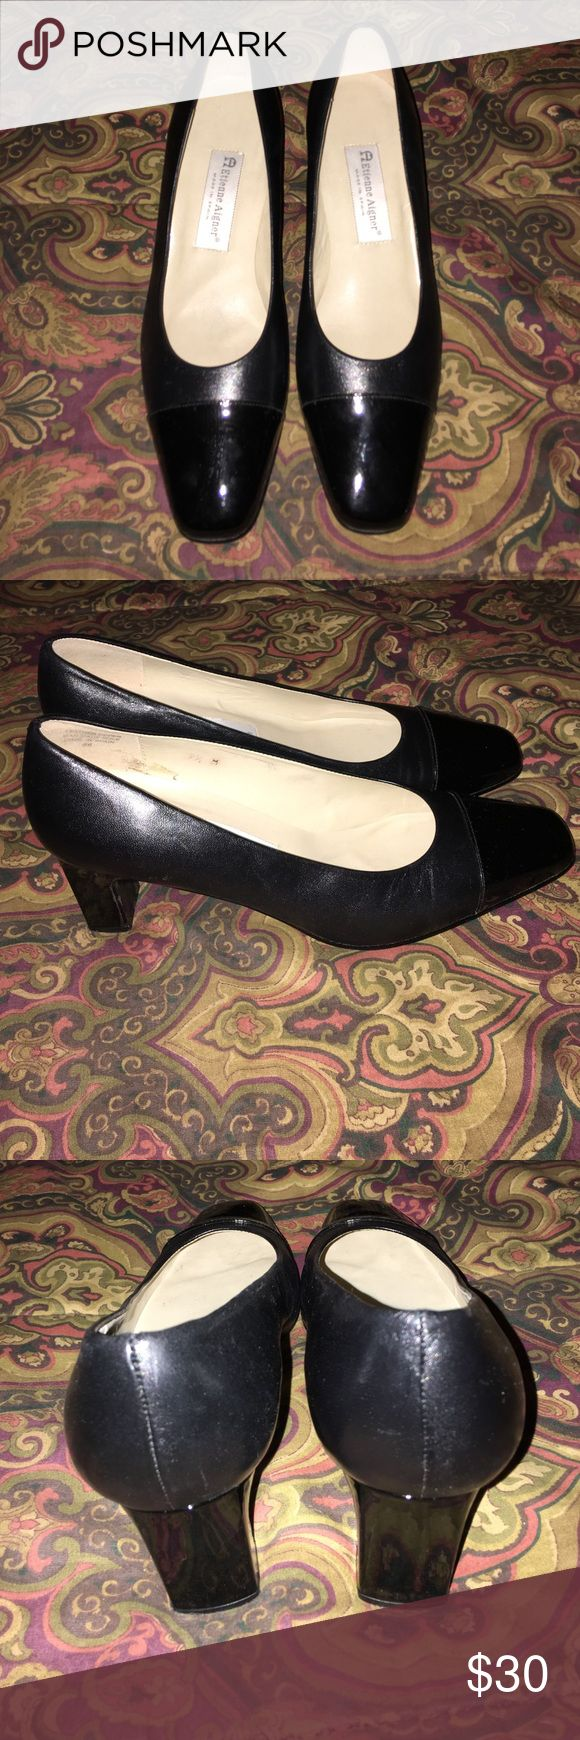 Beautiful Heels By Etienne Aigner 9.5 These shoes are in EUC. The have genuine leather uppers and are so comfortable. Pretty much flawless 💕💕💕 Etienne Aigner Shoes Heels